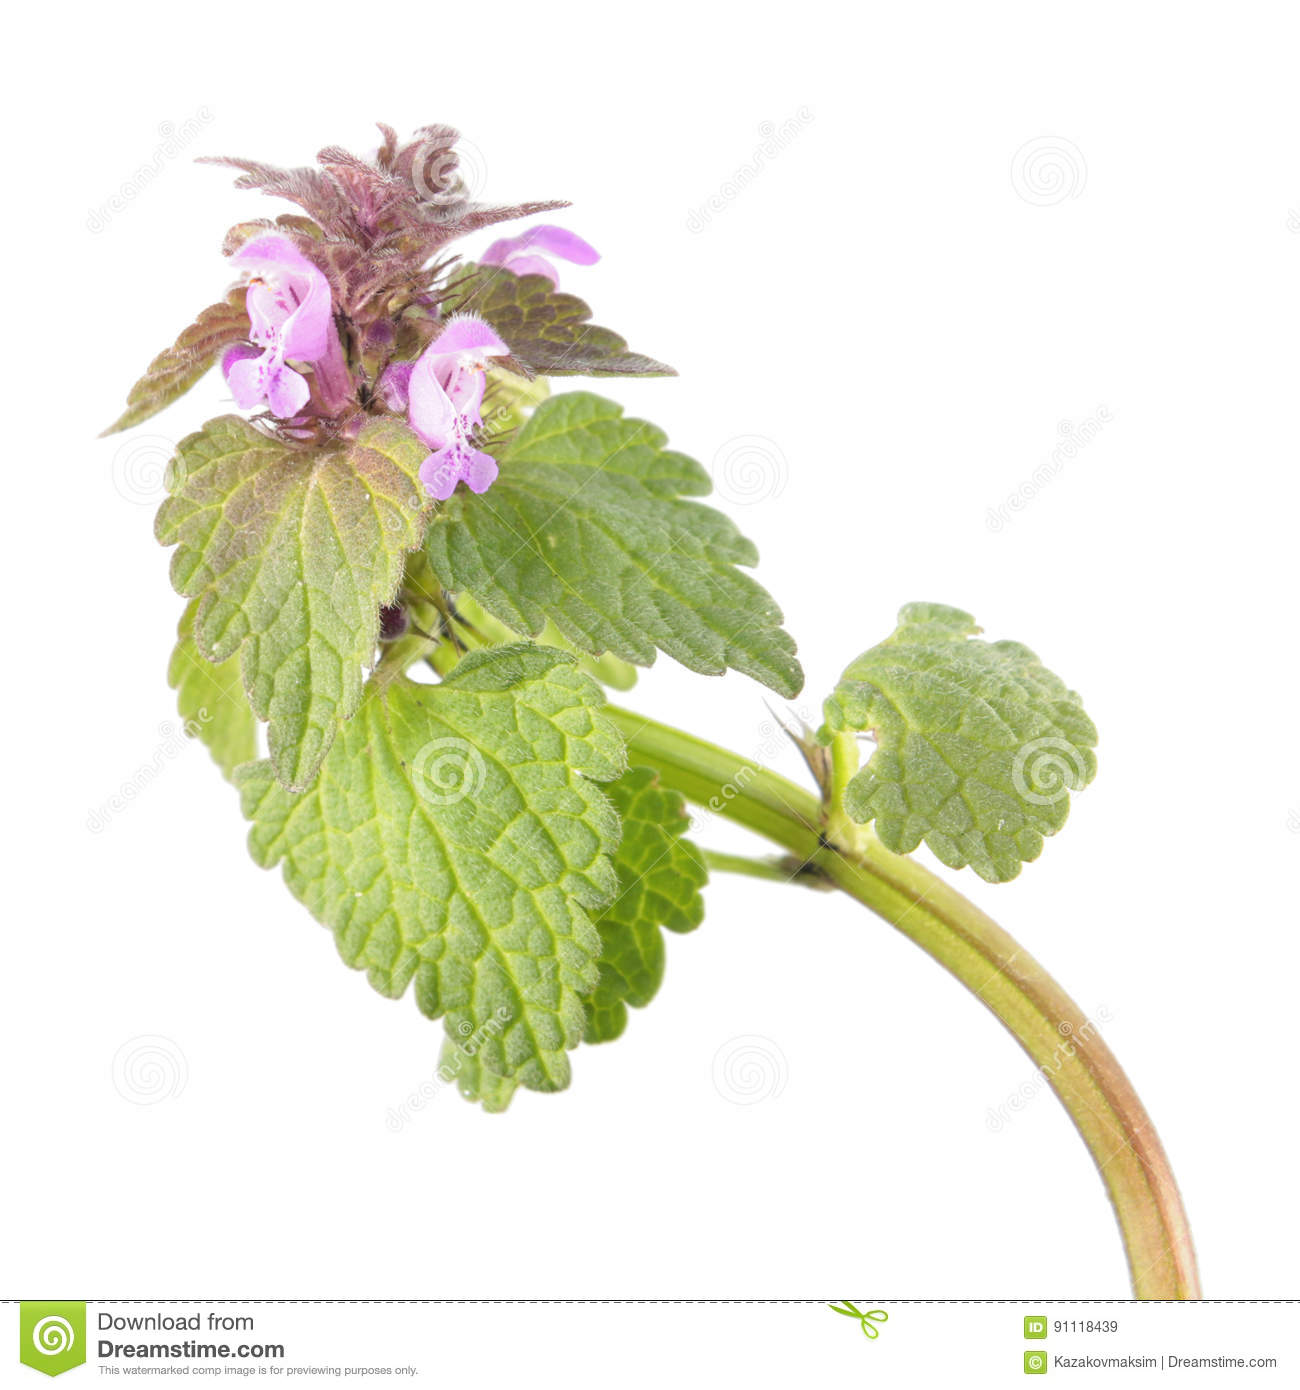 Purple Dead-nettle Or Lamium Purpureum Isolated On White ... on house plant rubber plant, poisonous plants with purple leaves, purple foliage plants with leaves, house plants with bronze leaves, house plants with waxy red blooms, house plants and their names, perennial plants with purple leaves, house plants with shiny leaves, house plants with dark red leaves, house plants with small leaves, wandering jew with fuzzy leaves, purple house plant fuzzy leaves, olive tree green leaves, house plant purple heart, house with red flowers, house plants with colorful leaves, house plants with light green leaves, florida plants with red leaves, tomato plants with purple leaves, house plants with long green leaves,